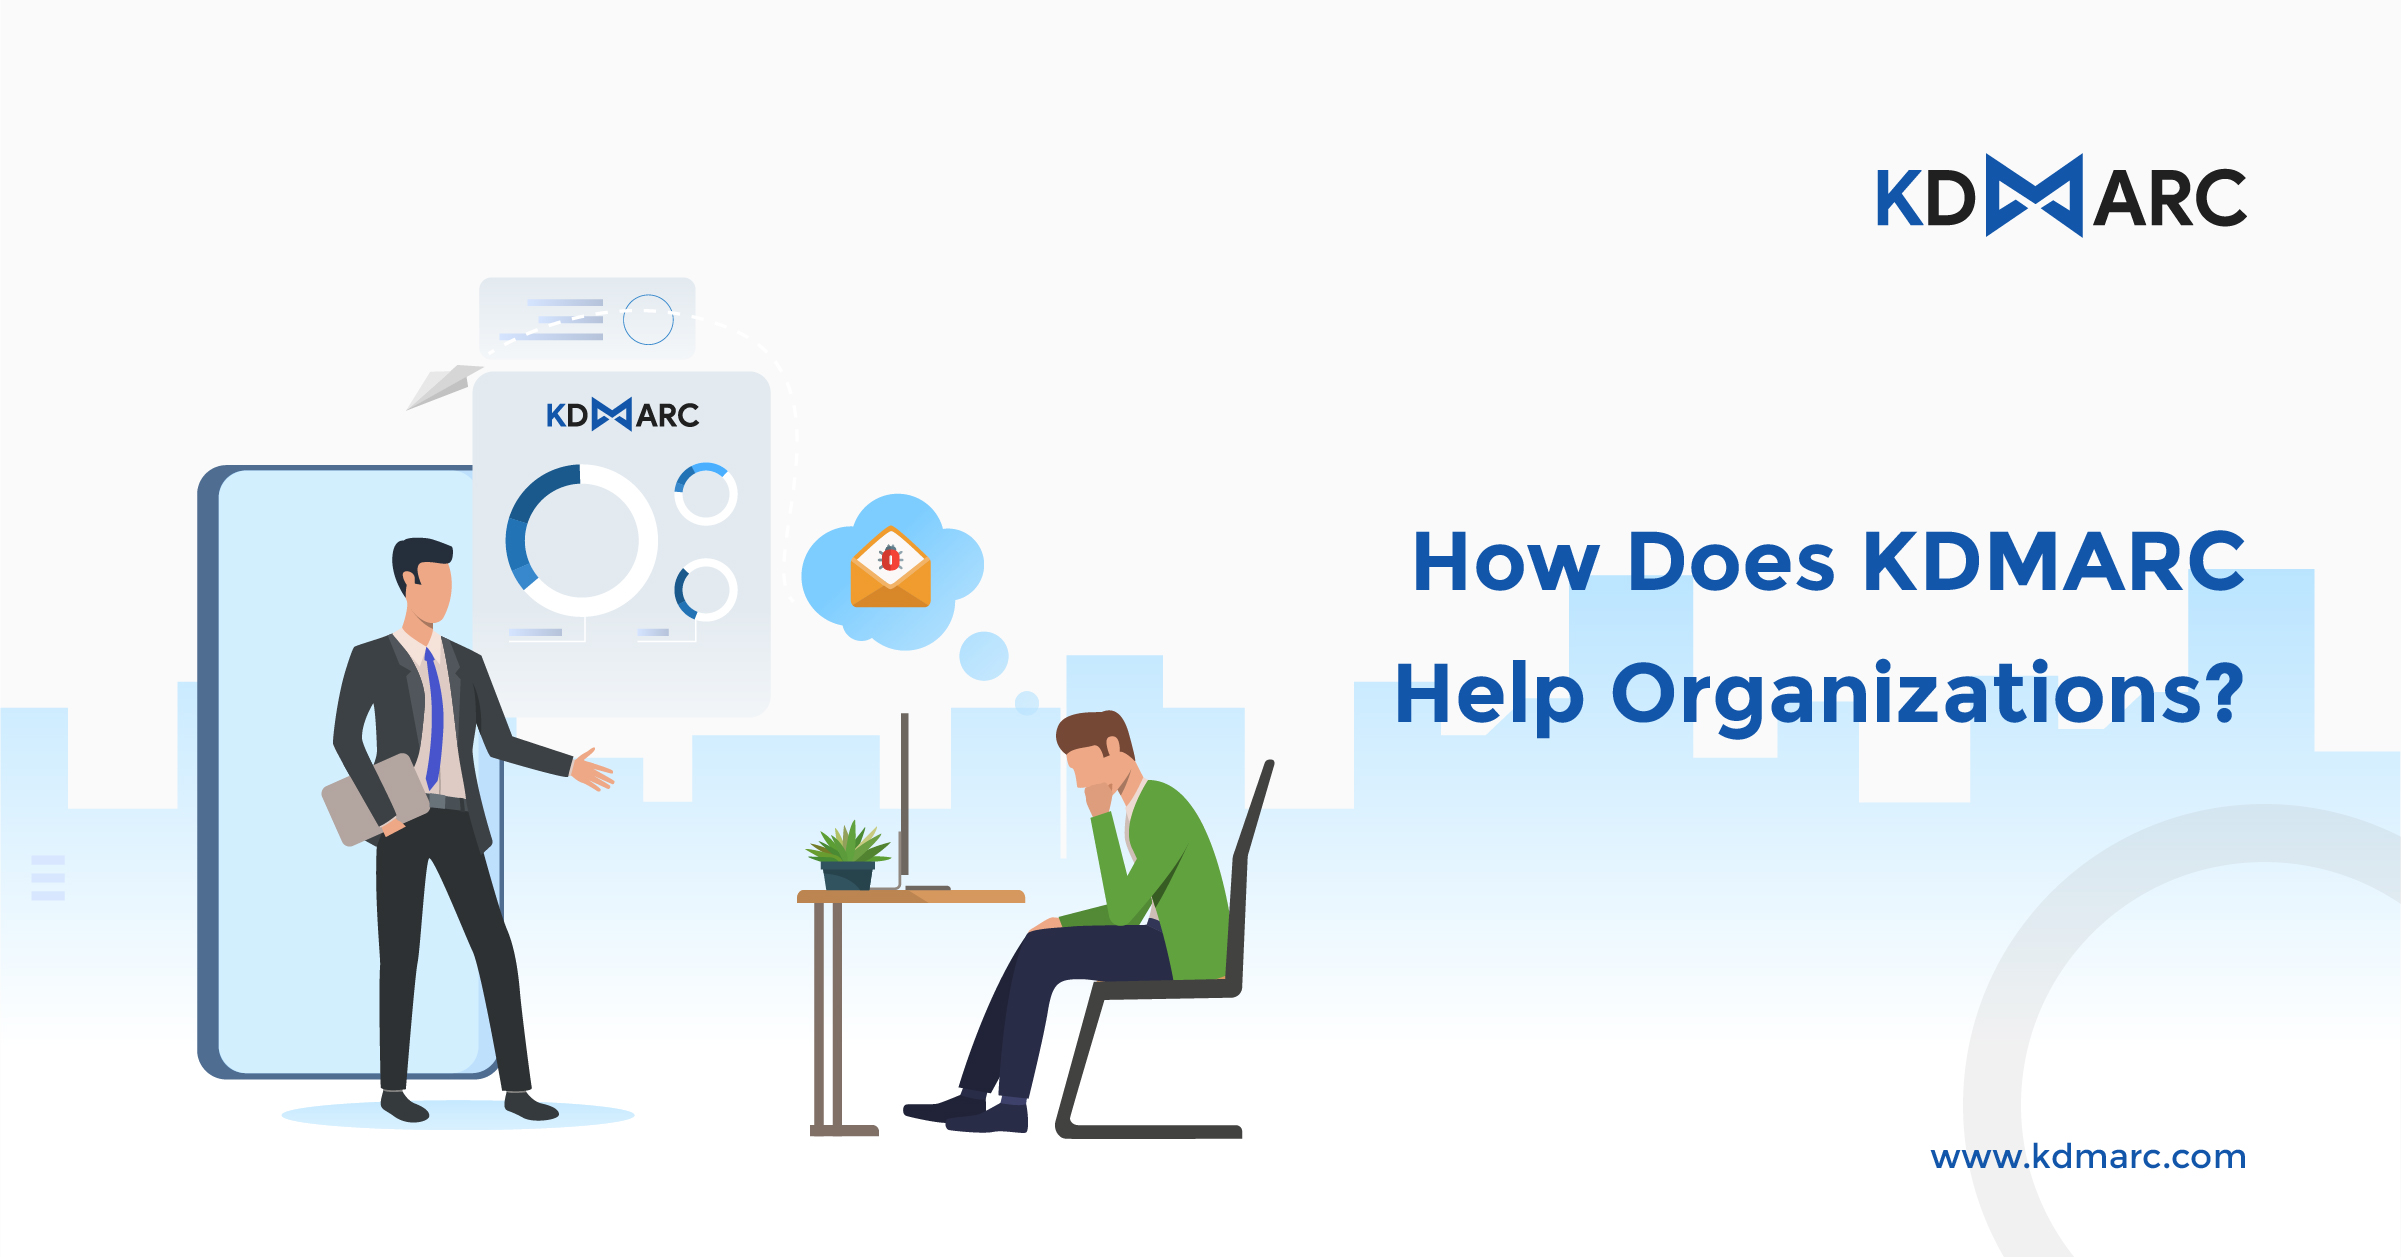 How does KDMARC help organizations?